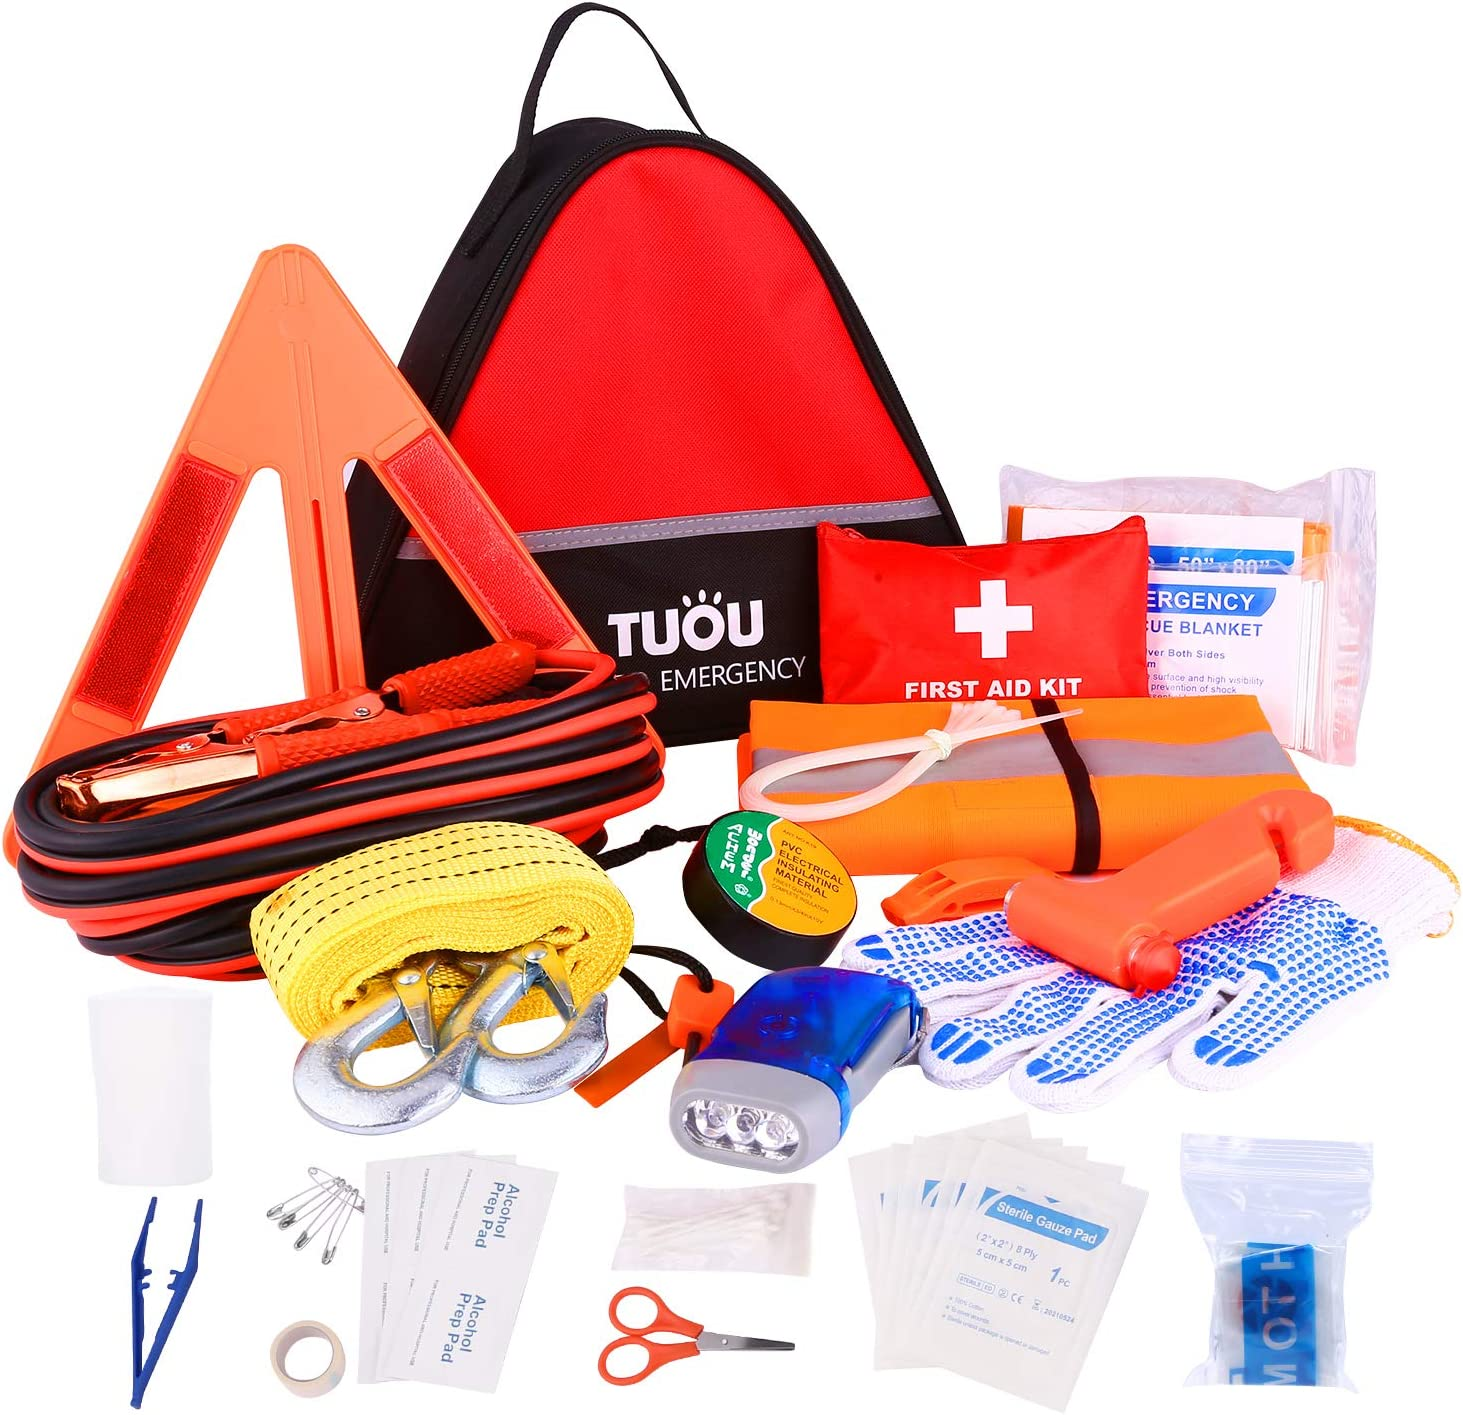 TUOU Auto Emergency Kit Frist Aid Kit for Cars and Trucks,All-in-One Roadside Assistance Auto Survival Kit Safety Kit -16.4 Feet Jumper Cable, Reflective Triangle,Tow Rope and Vehicle Survival Tools